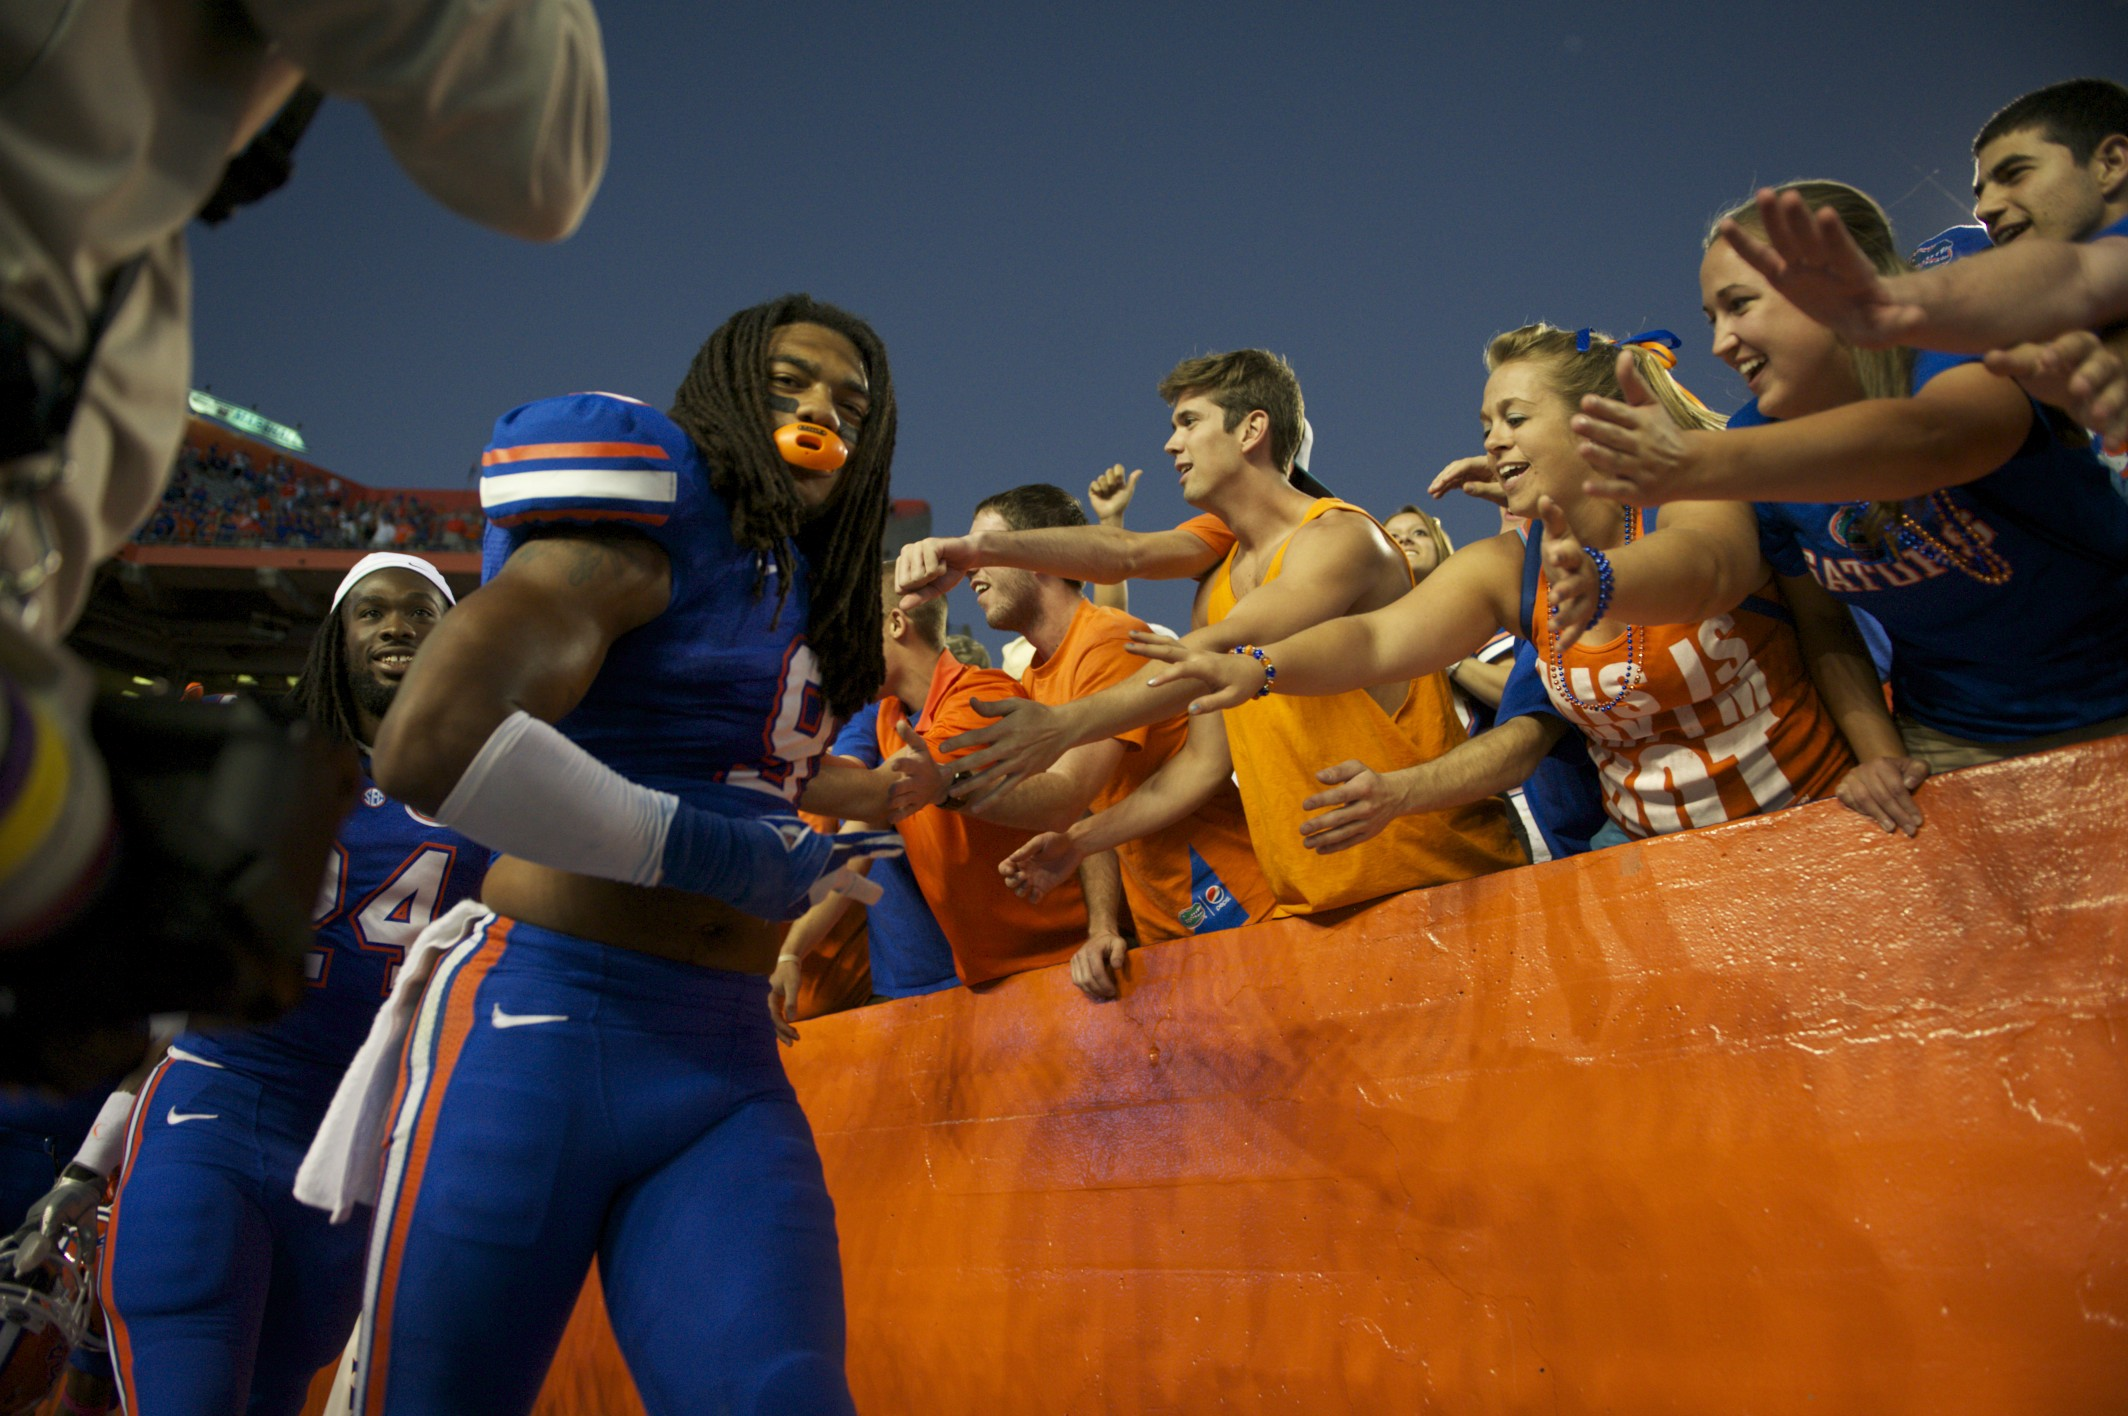 Florida players show their appreciation to the fans by high fiving them after their victory on Saturday.